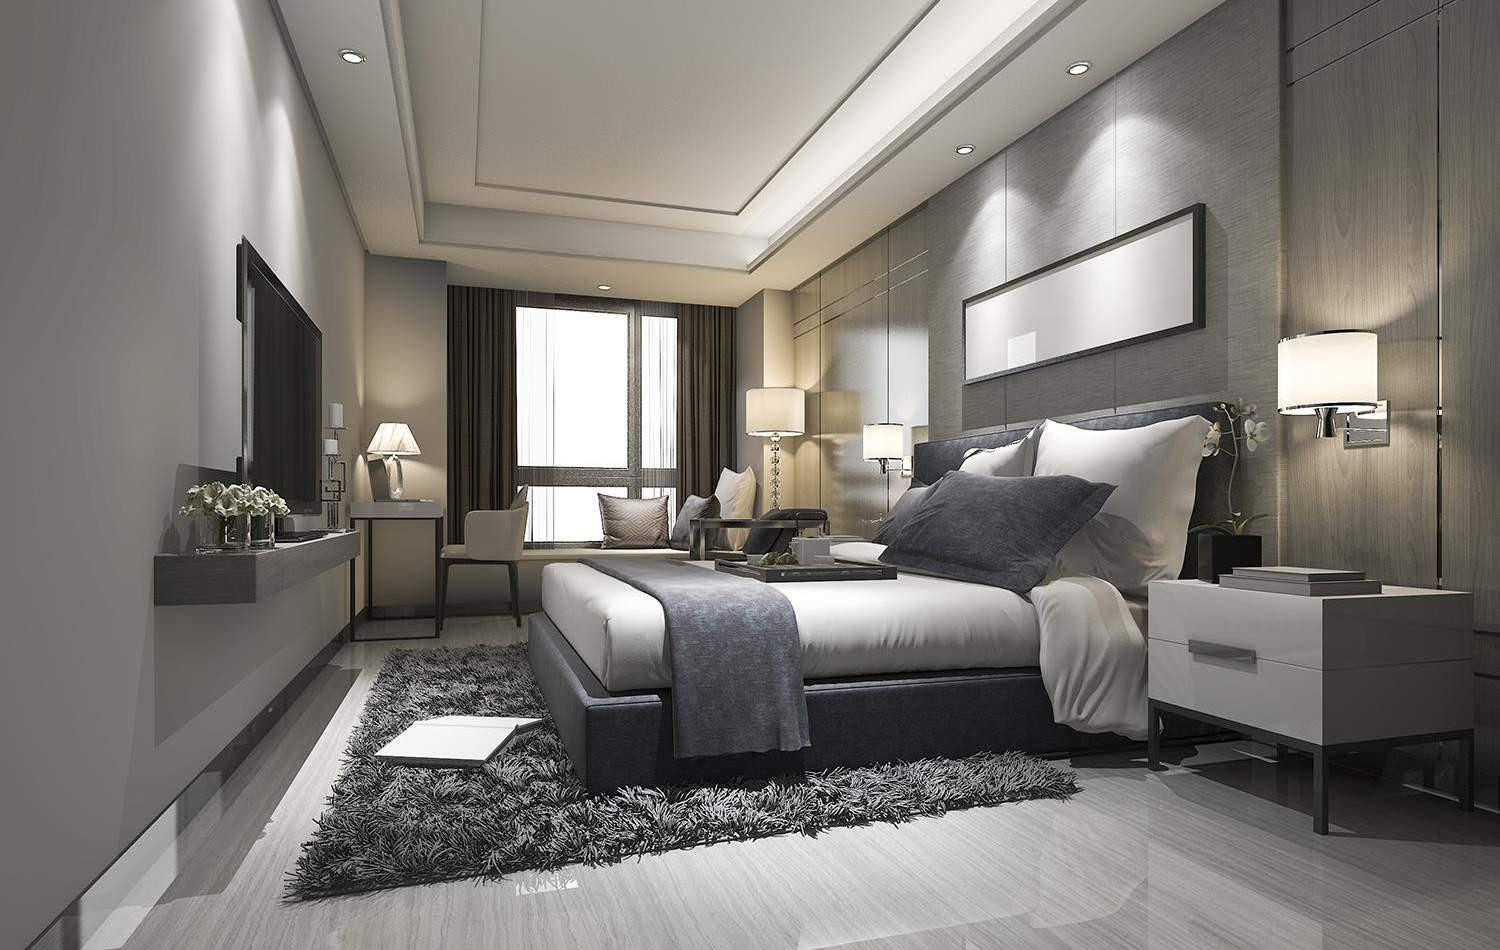 The London Resort Hotel Room Investment by Paramount